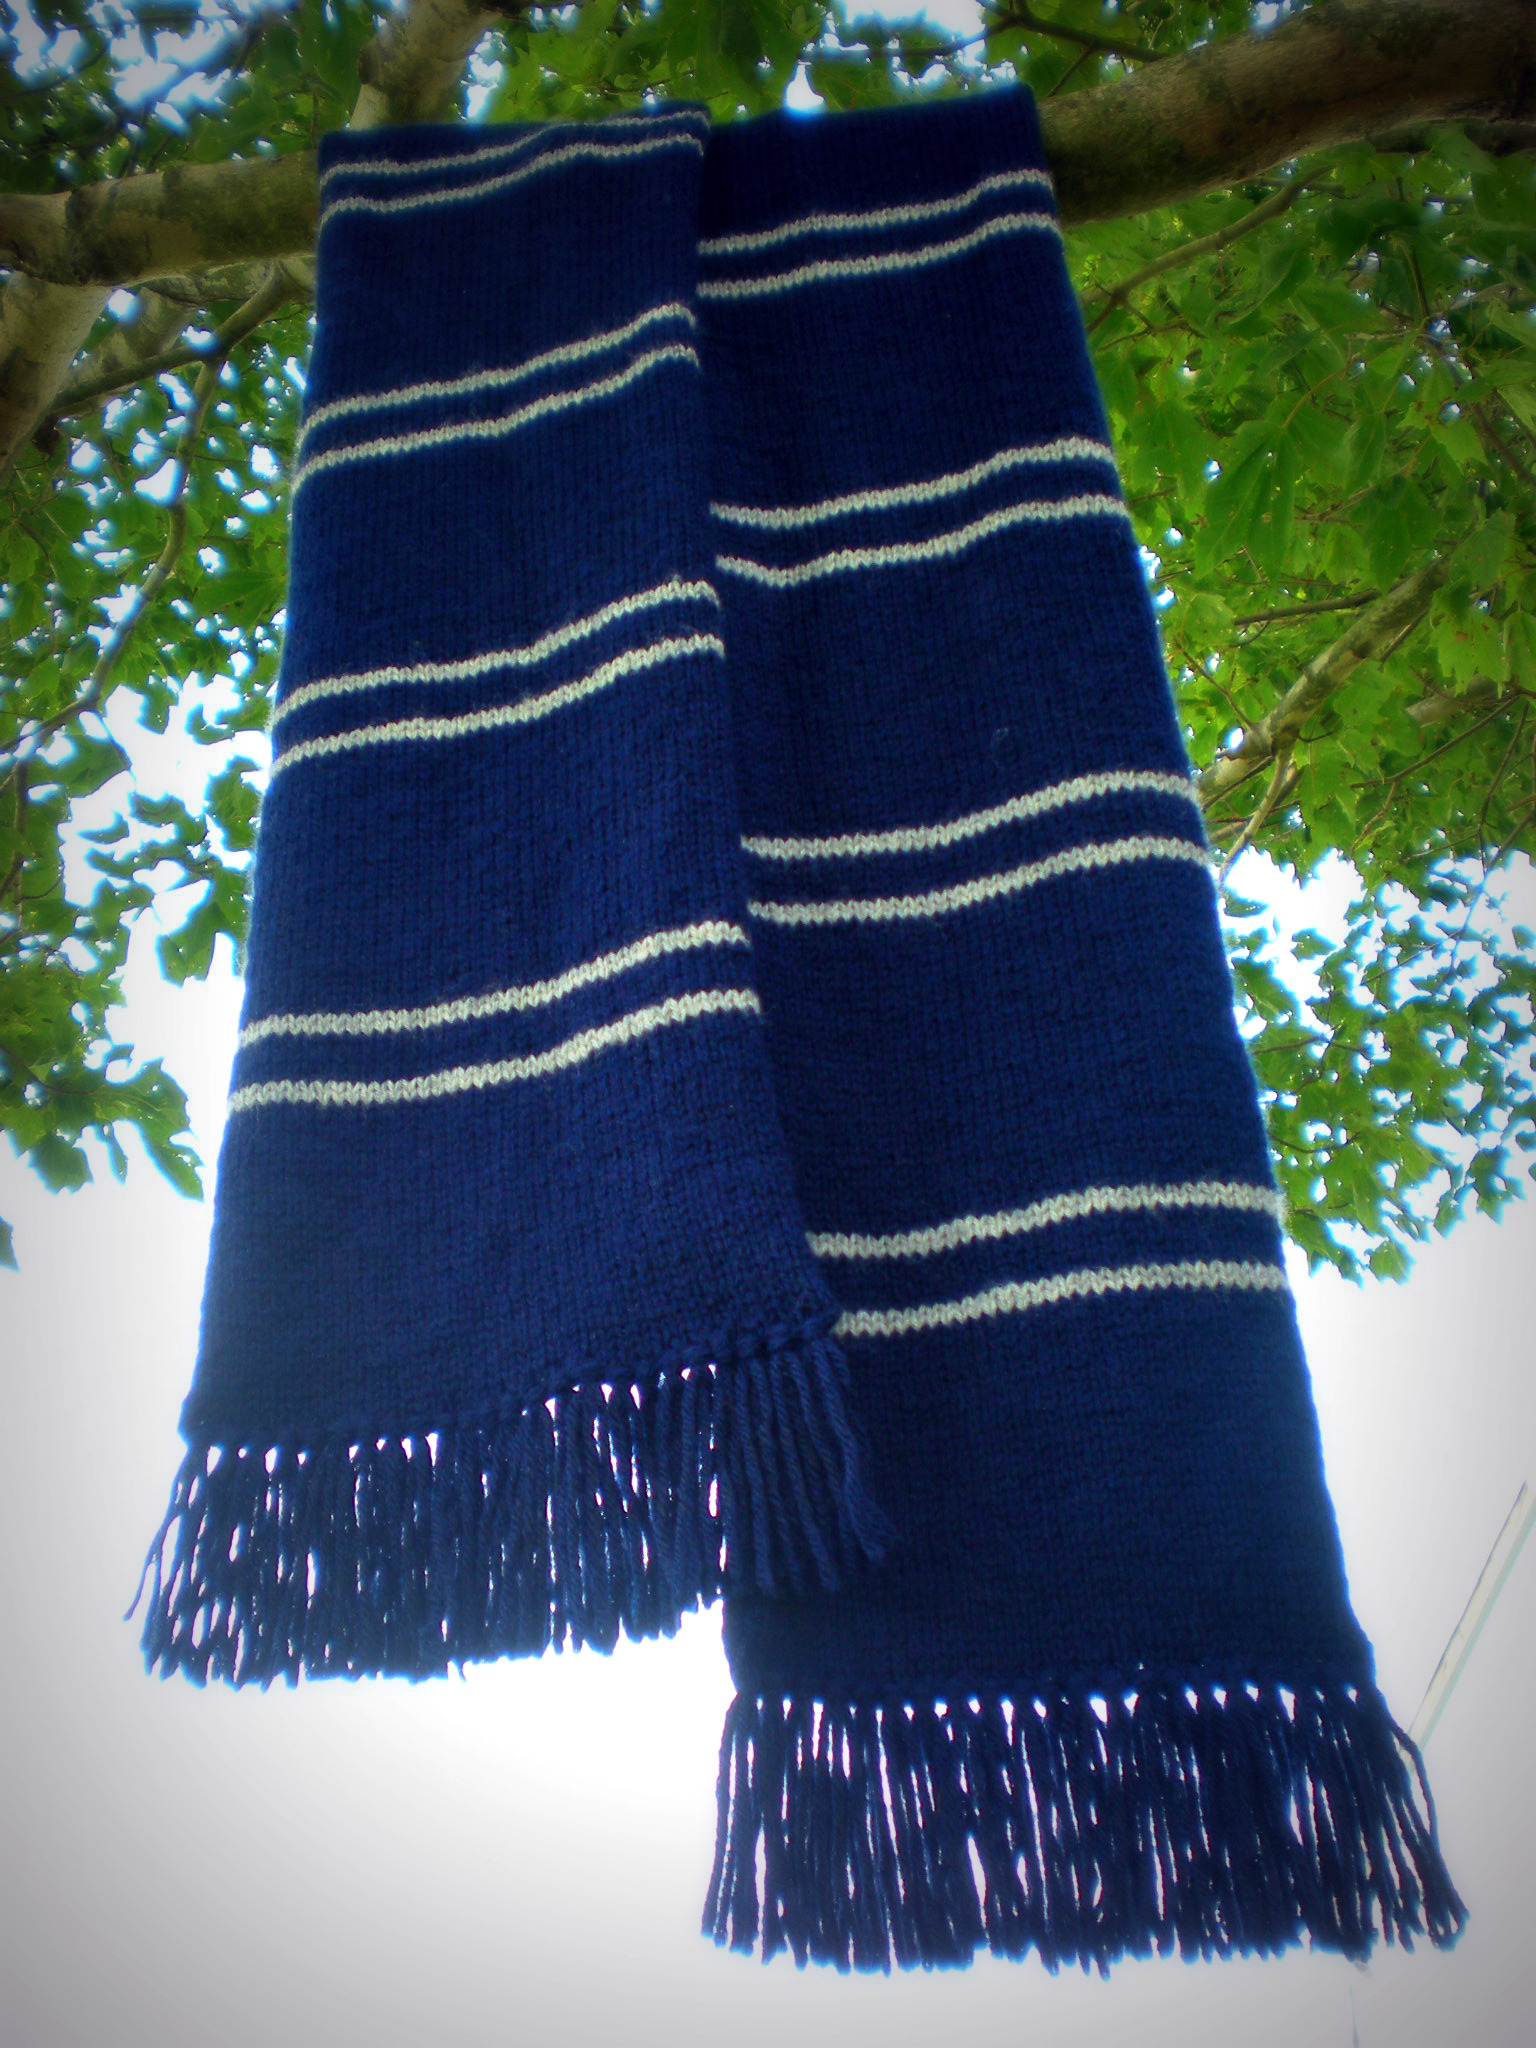 Knit Harry Potter Scarf Pattern : Ravenclaw Scarf by TheSuzieBlue on DeviantArt